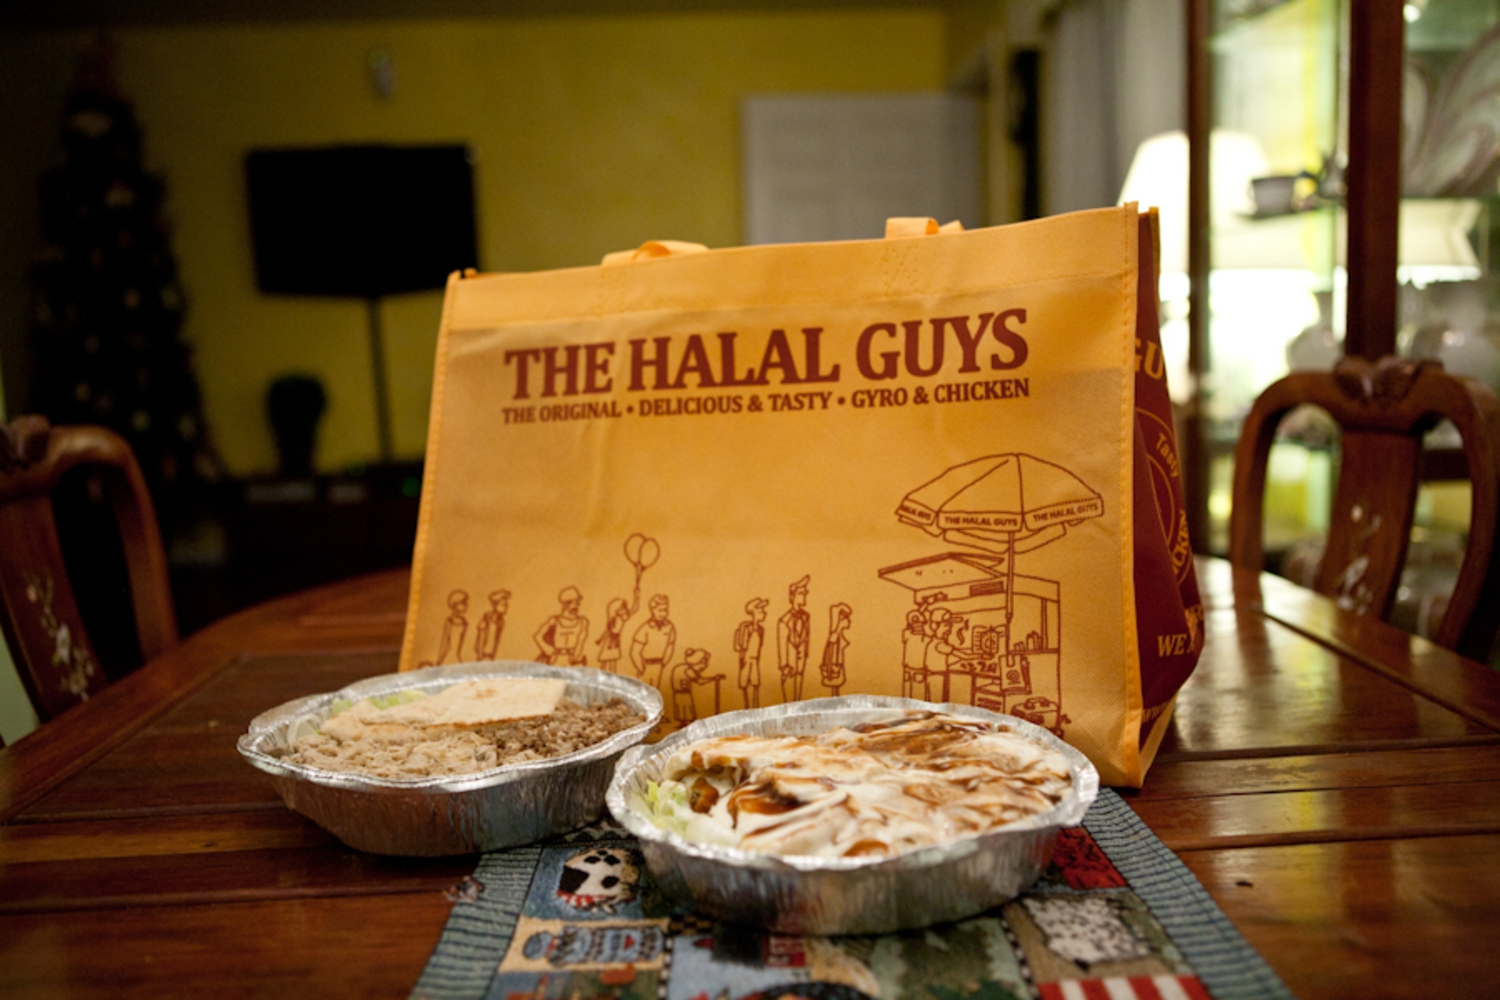 7/366 | WHAATTTT?!?!?!?! Halal guys have their own shopping bags?!?!?! hahahahha  If anyone ever visit New York City.. YOU HAVE TO STOP BY 53rd and 6th FOR SOME HALAL!! with white sauce =D